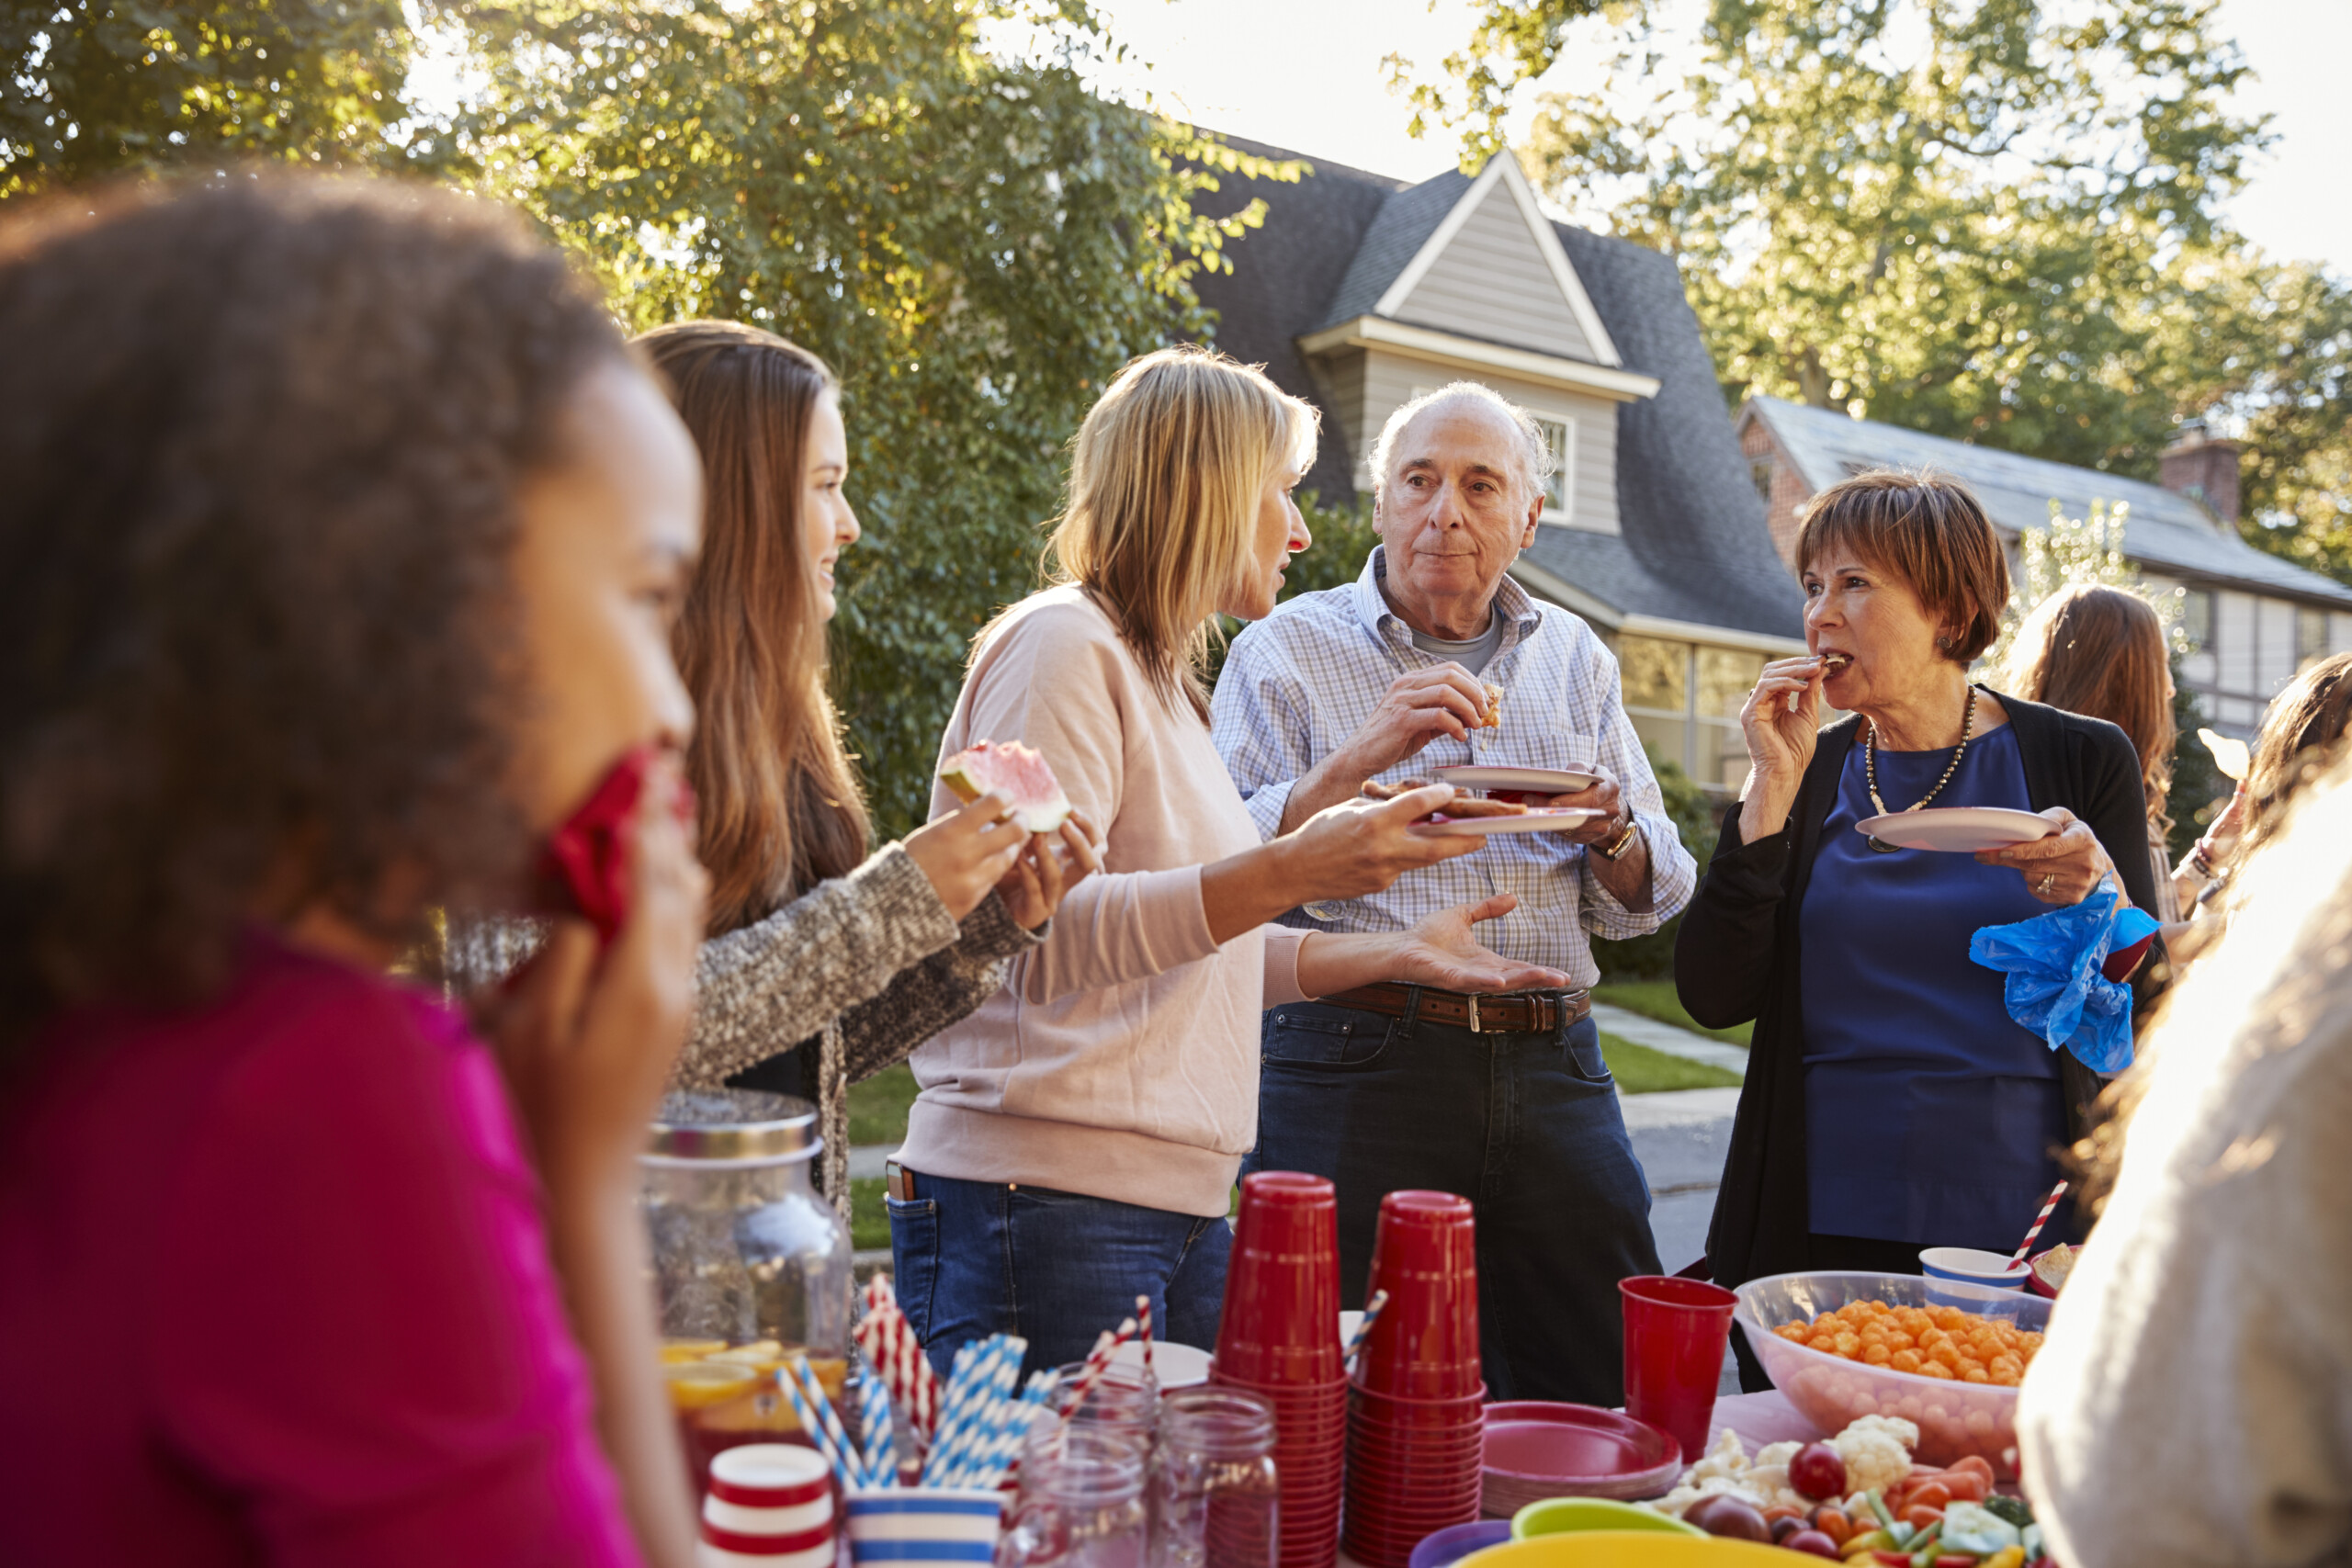 Neighboring Know-how: 4 Tips to be a Better Neighbor